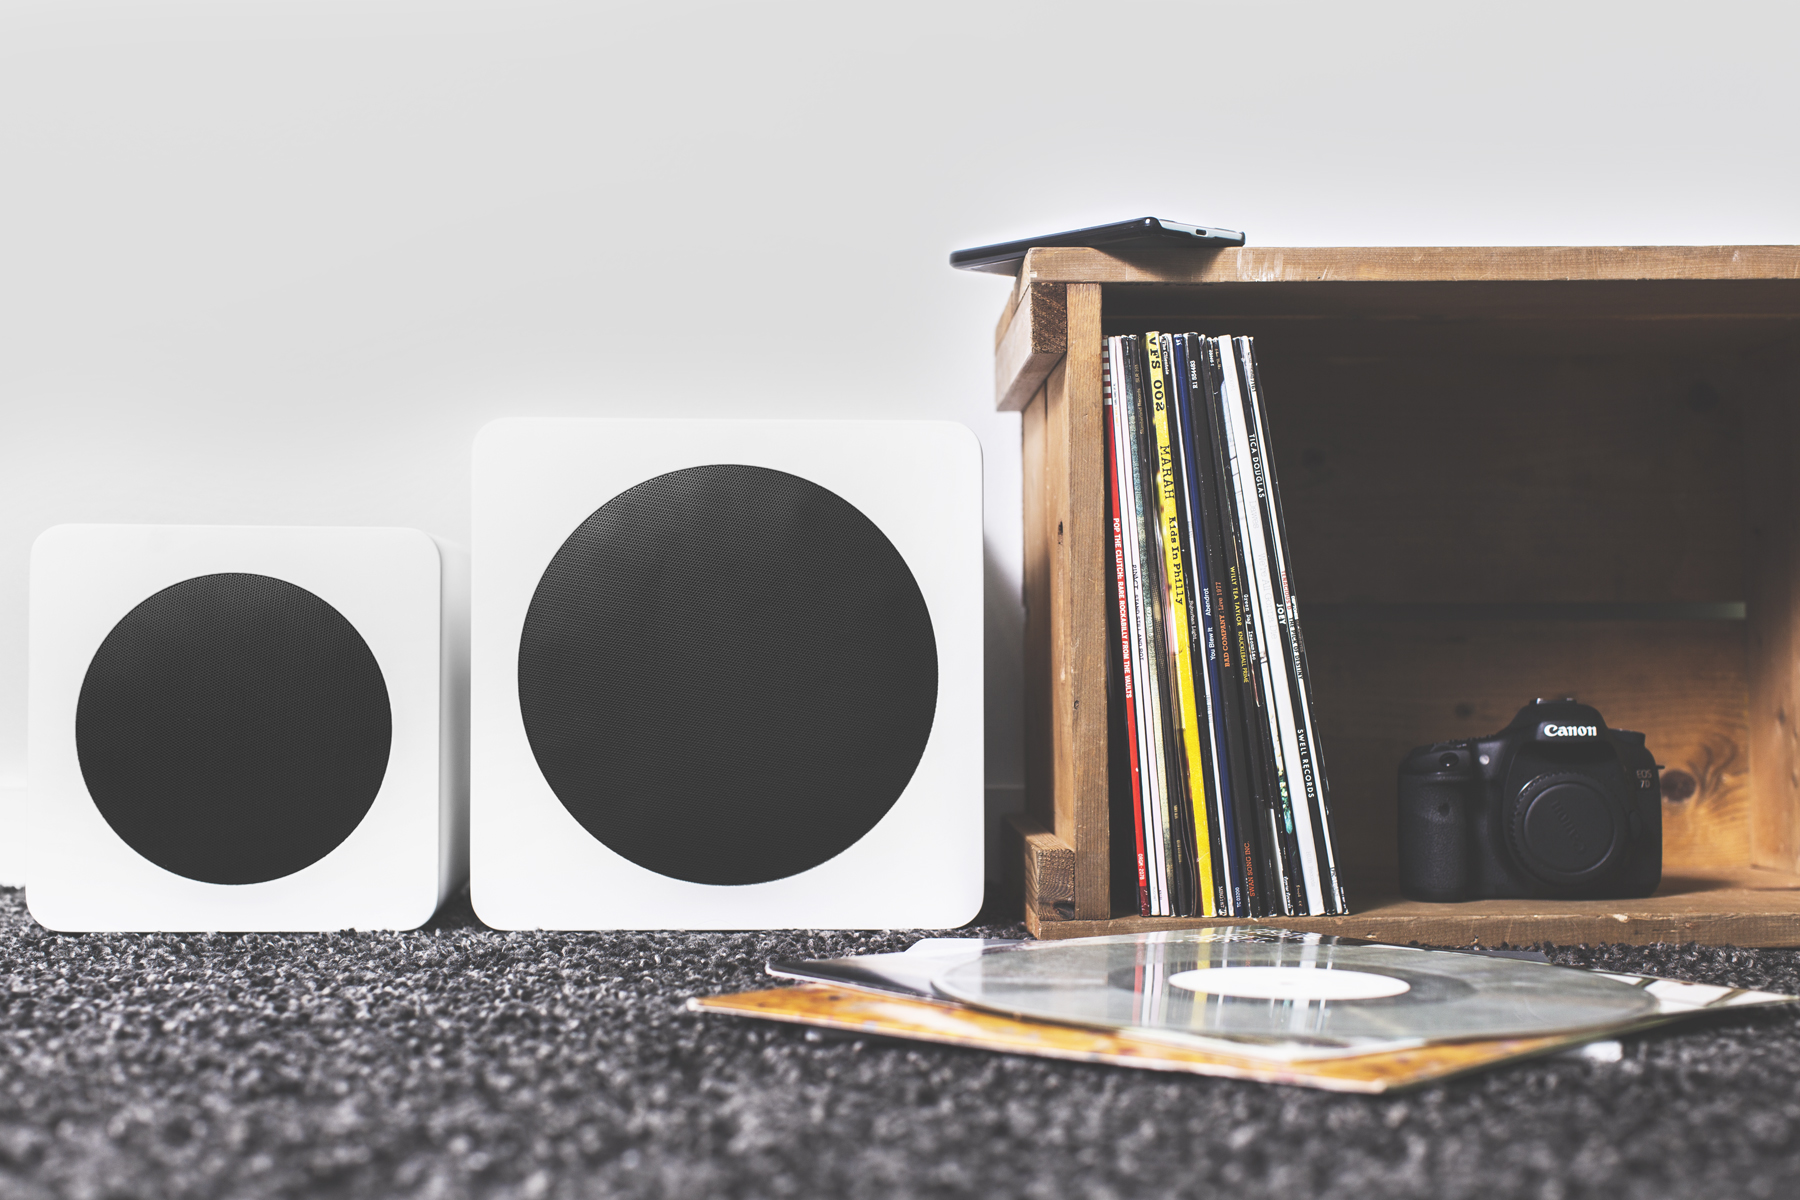 SUB6 and SUB8 subwoofers next to a record crate with records, a camera, and a cell phone